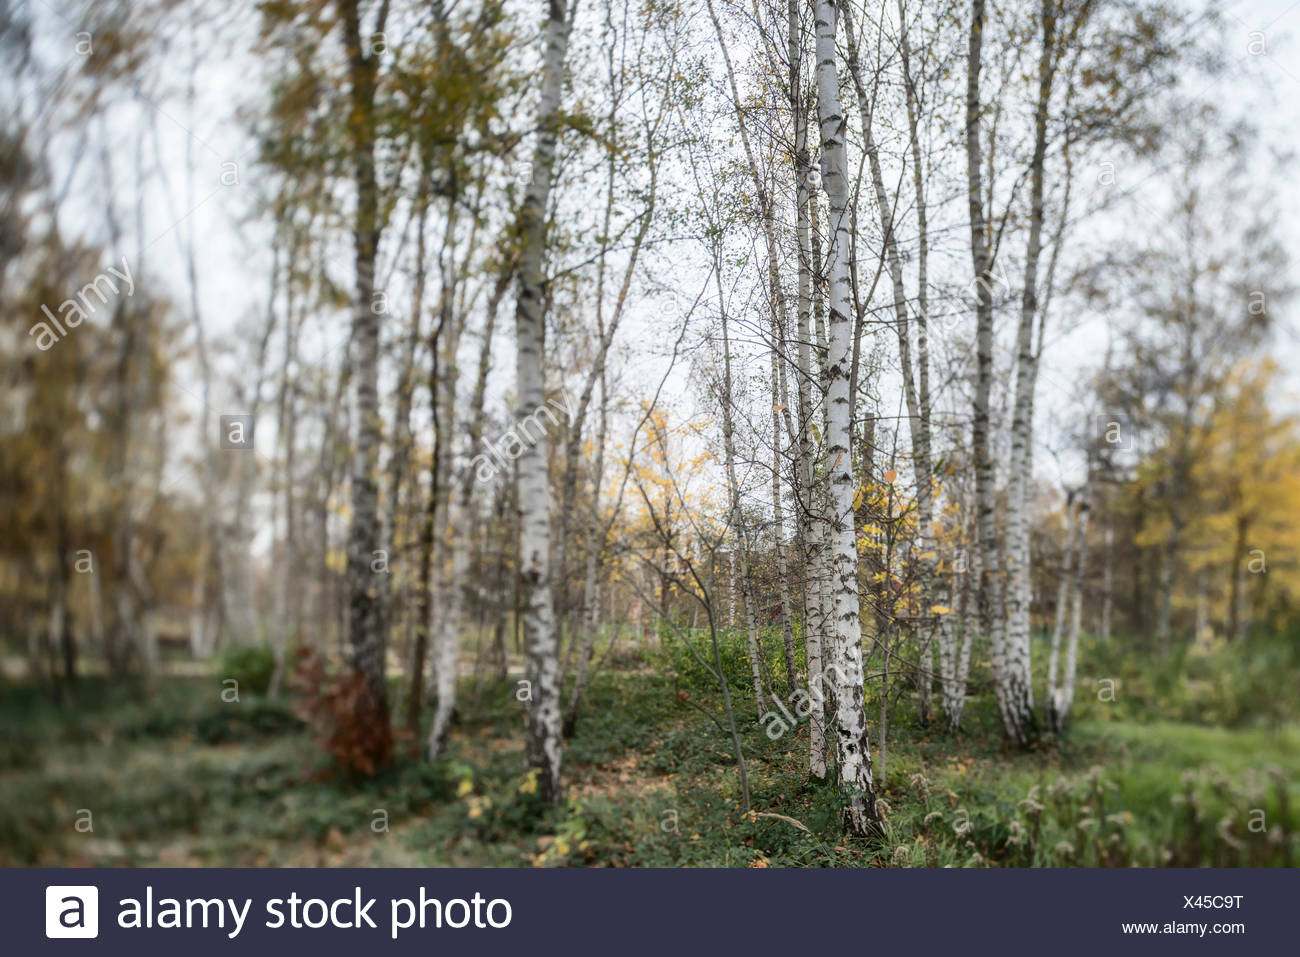 Birch forest in autumn, selective focus - Stock Image